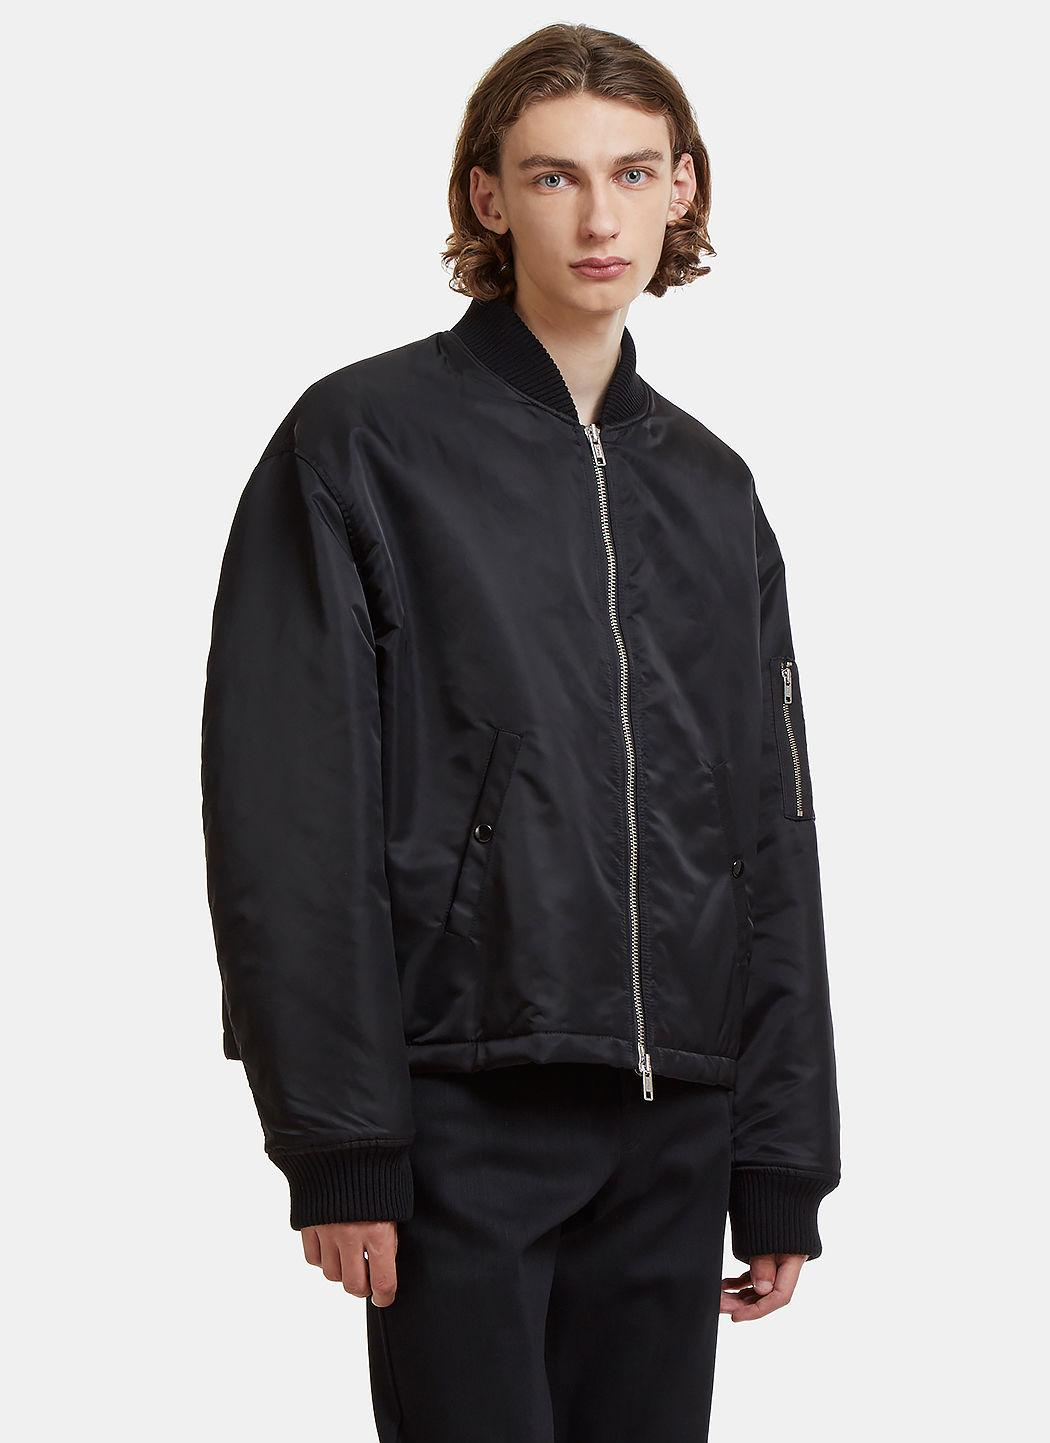 Raf Simons Oversized Any Way Out Bomber Jacket In Black